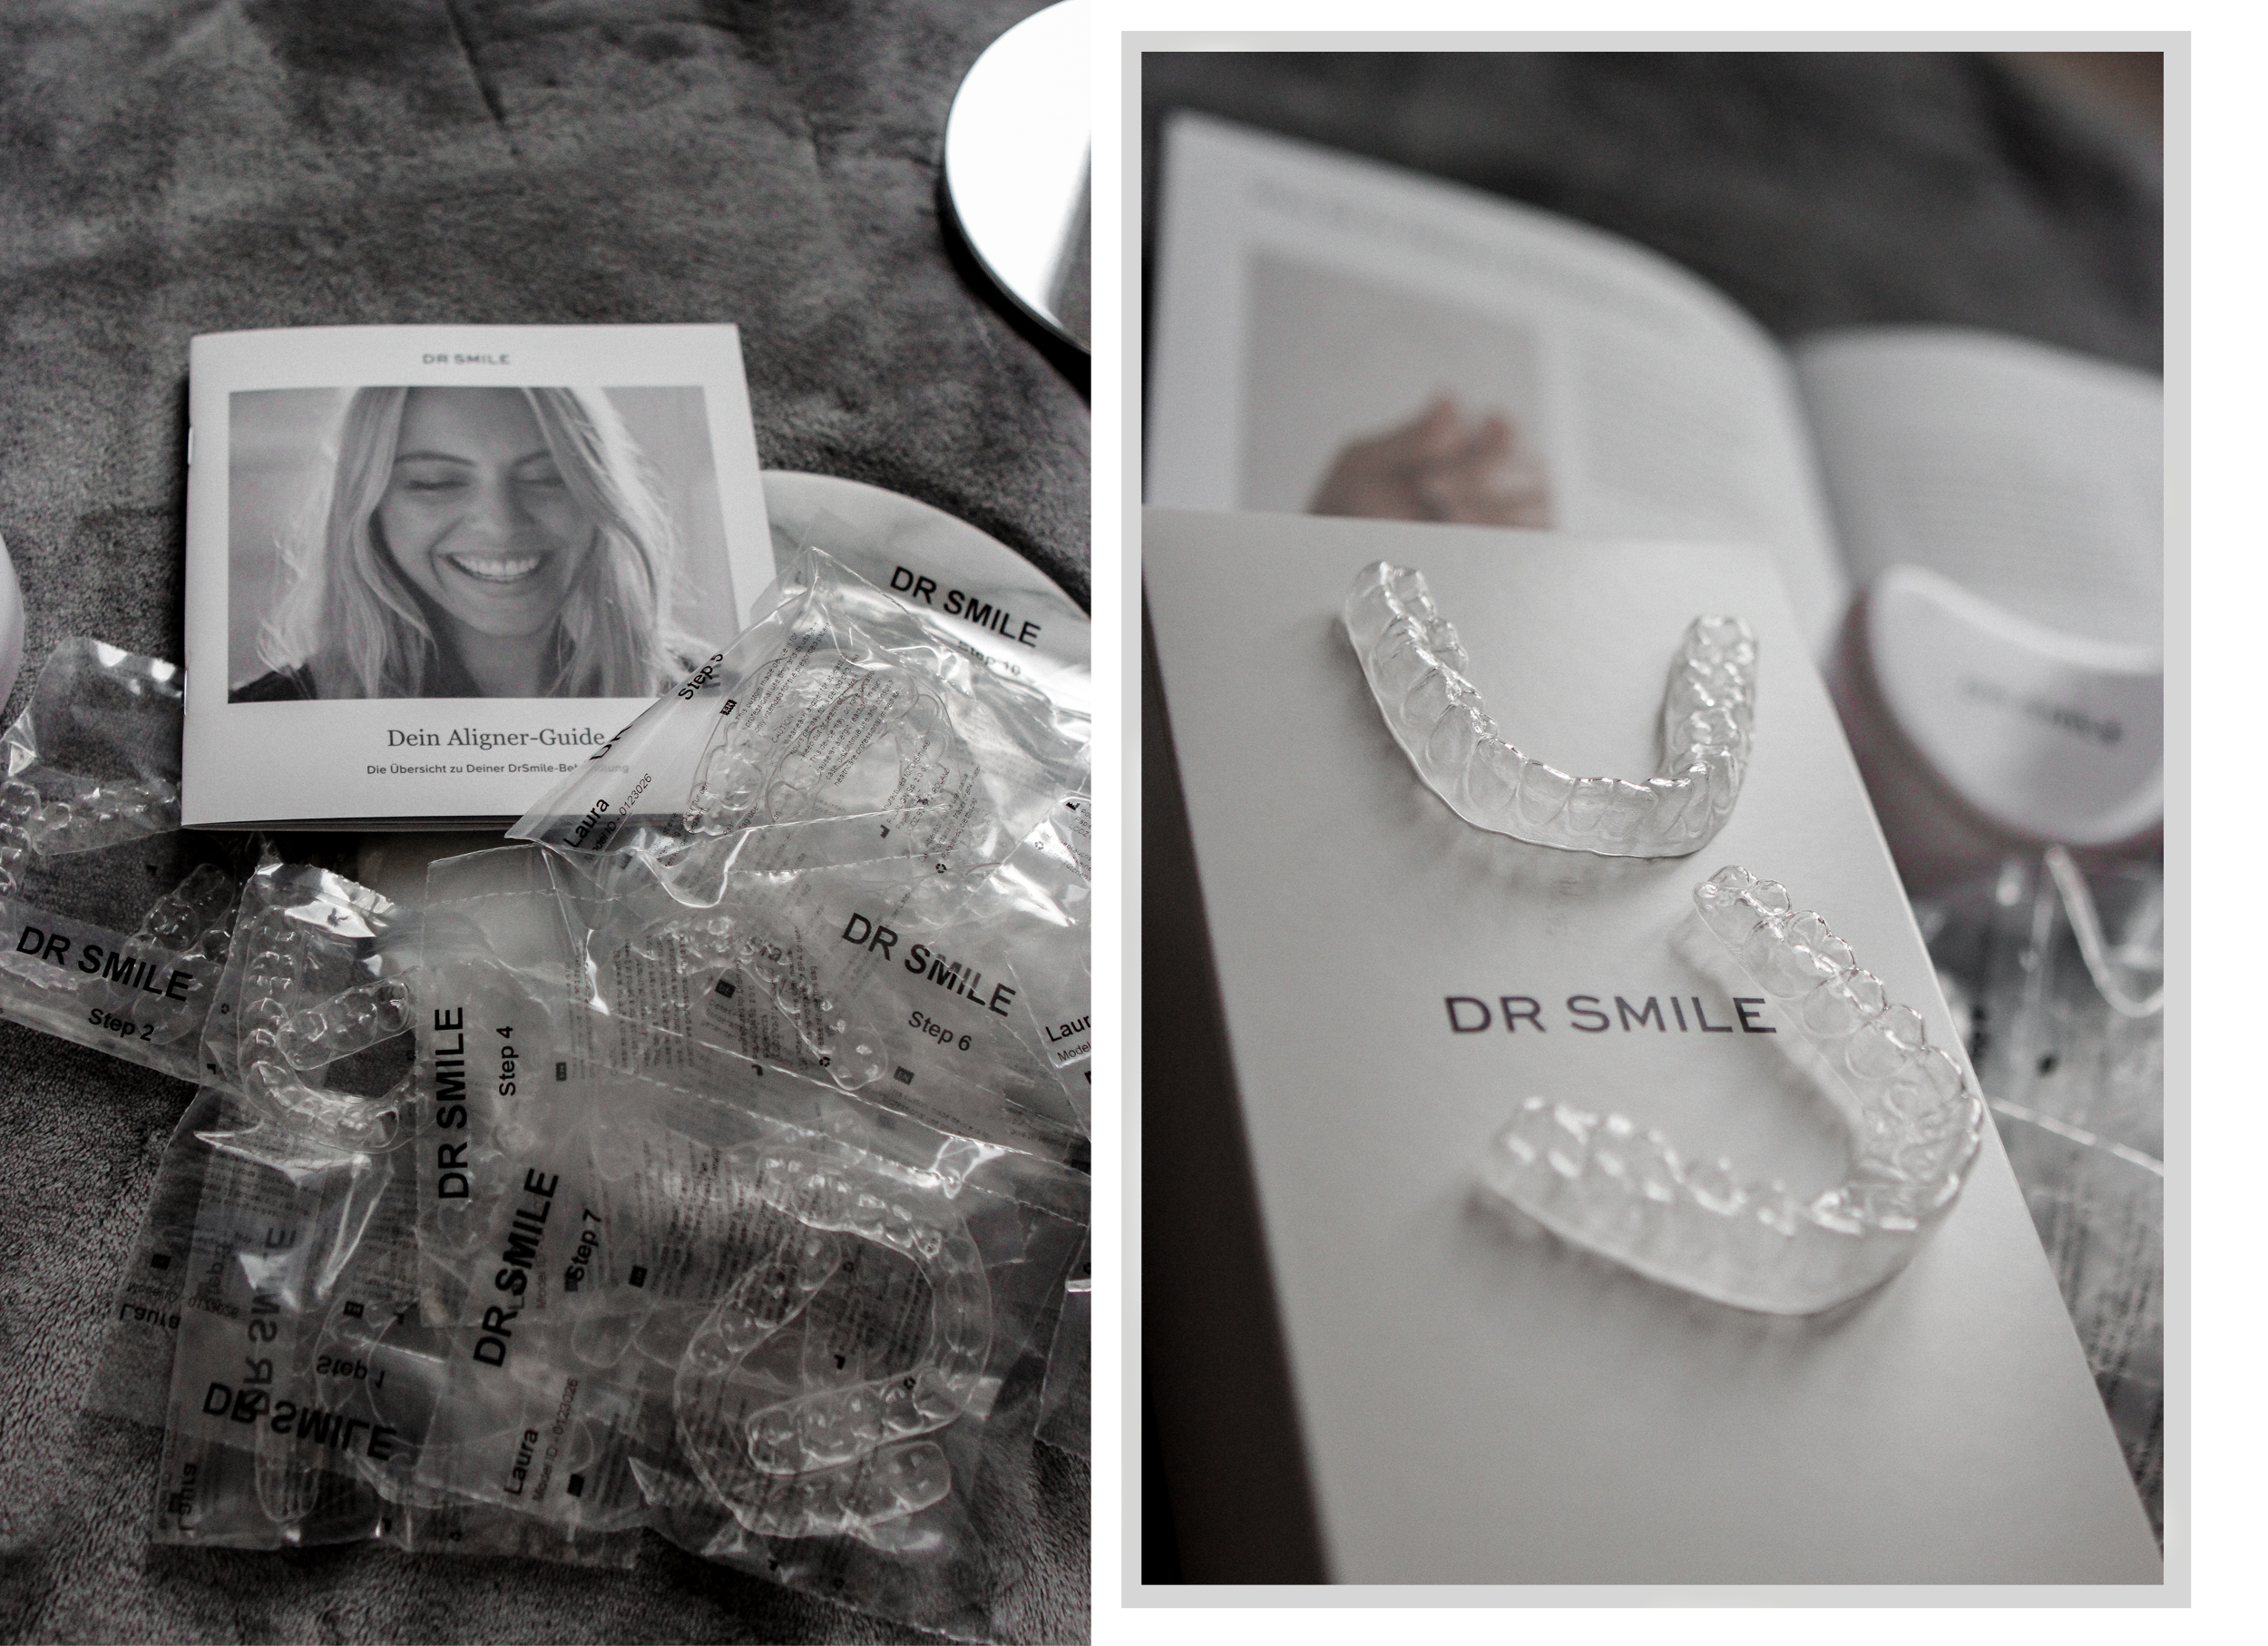 lauralamode-blogger-dr smile-berlin-lifestyle blogger-zahnschienen-transparente zahnschienen-dr smile review-fashionblogger-beauty